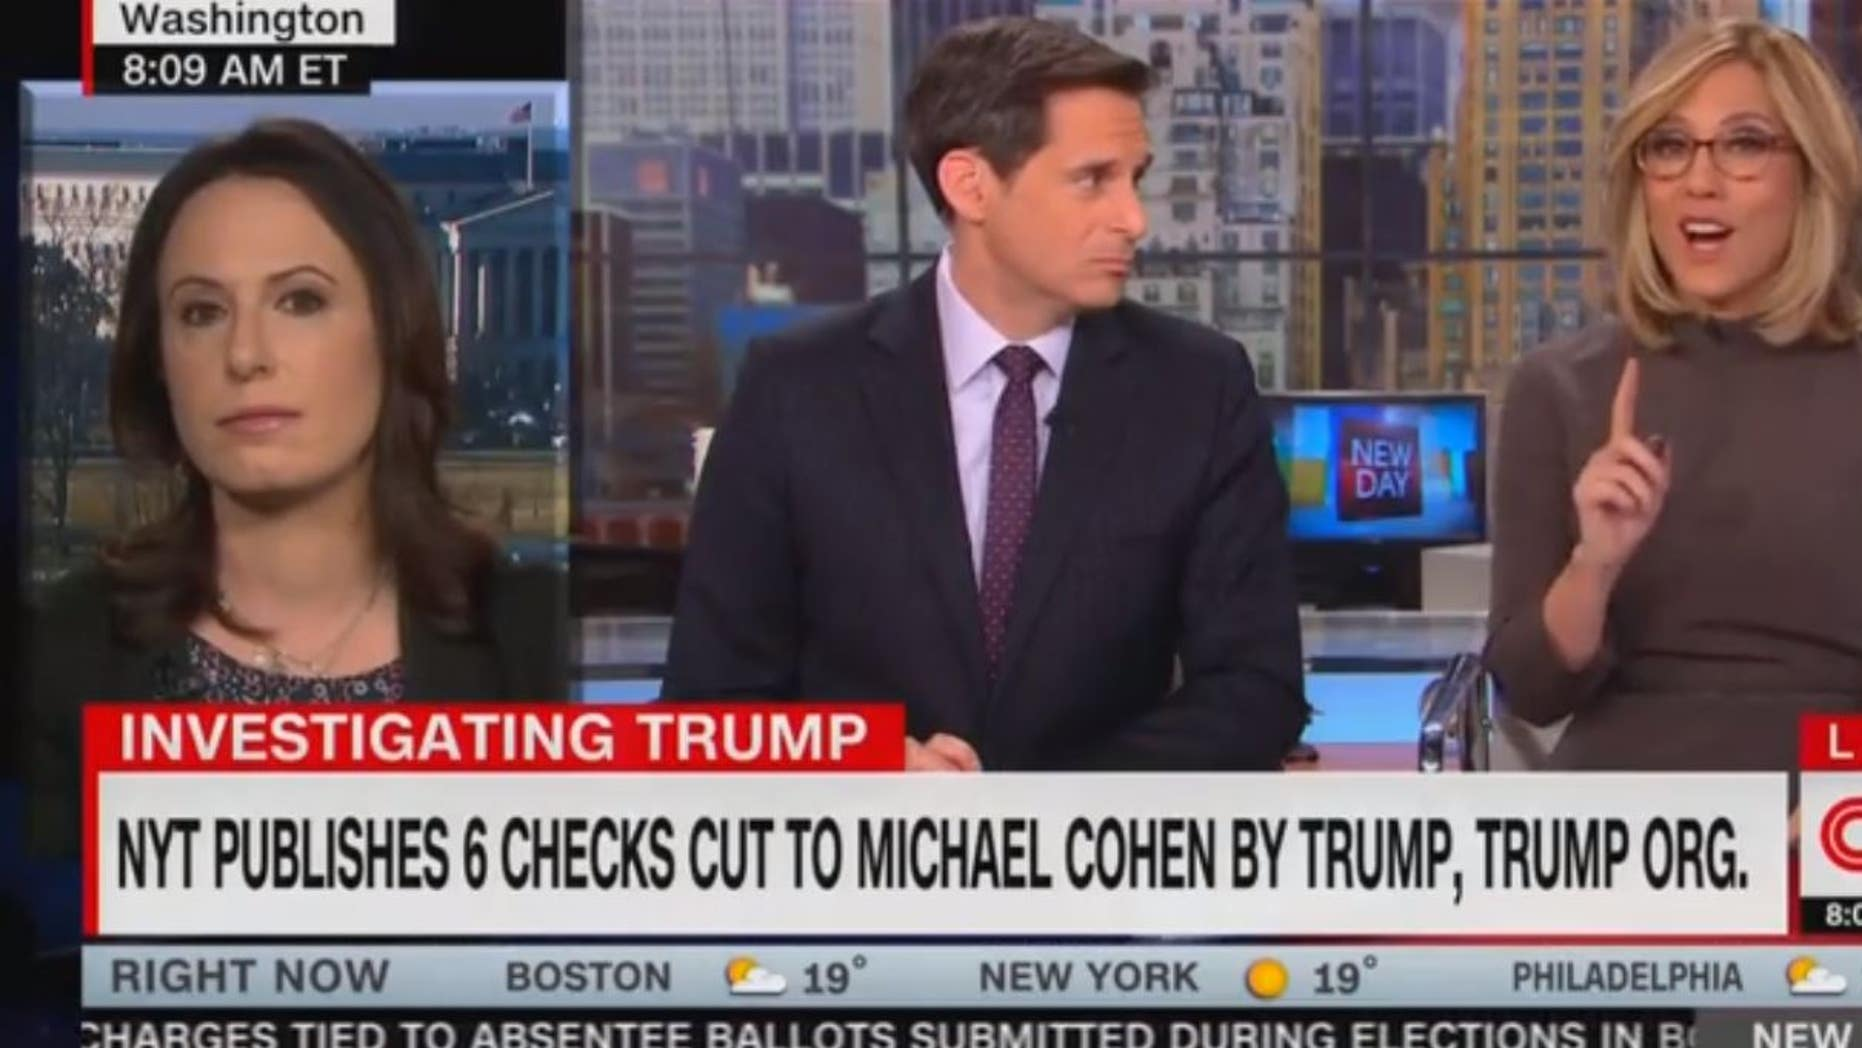 New York Times reporter clashes with CNN anchor over Trump